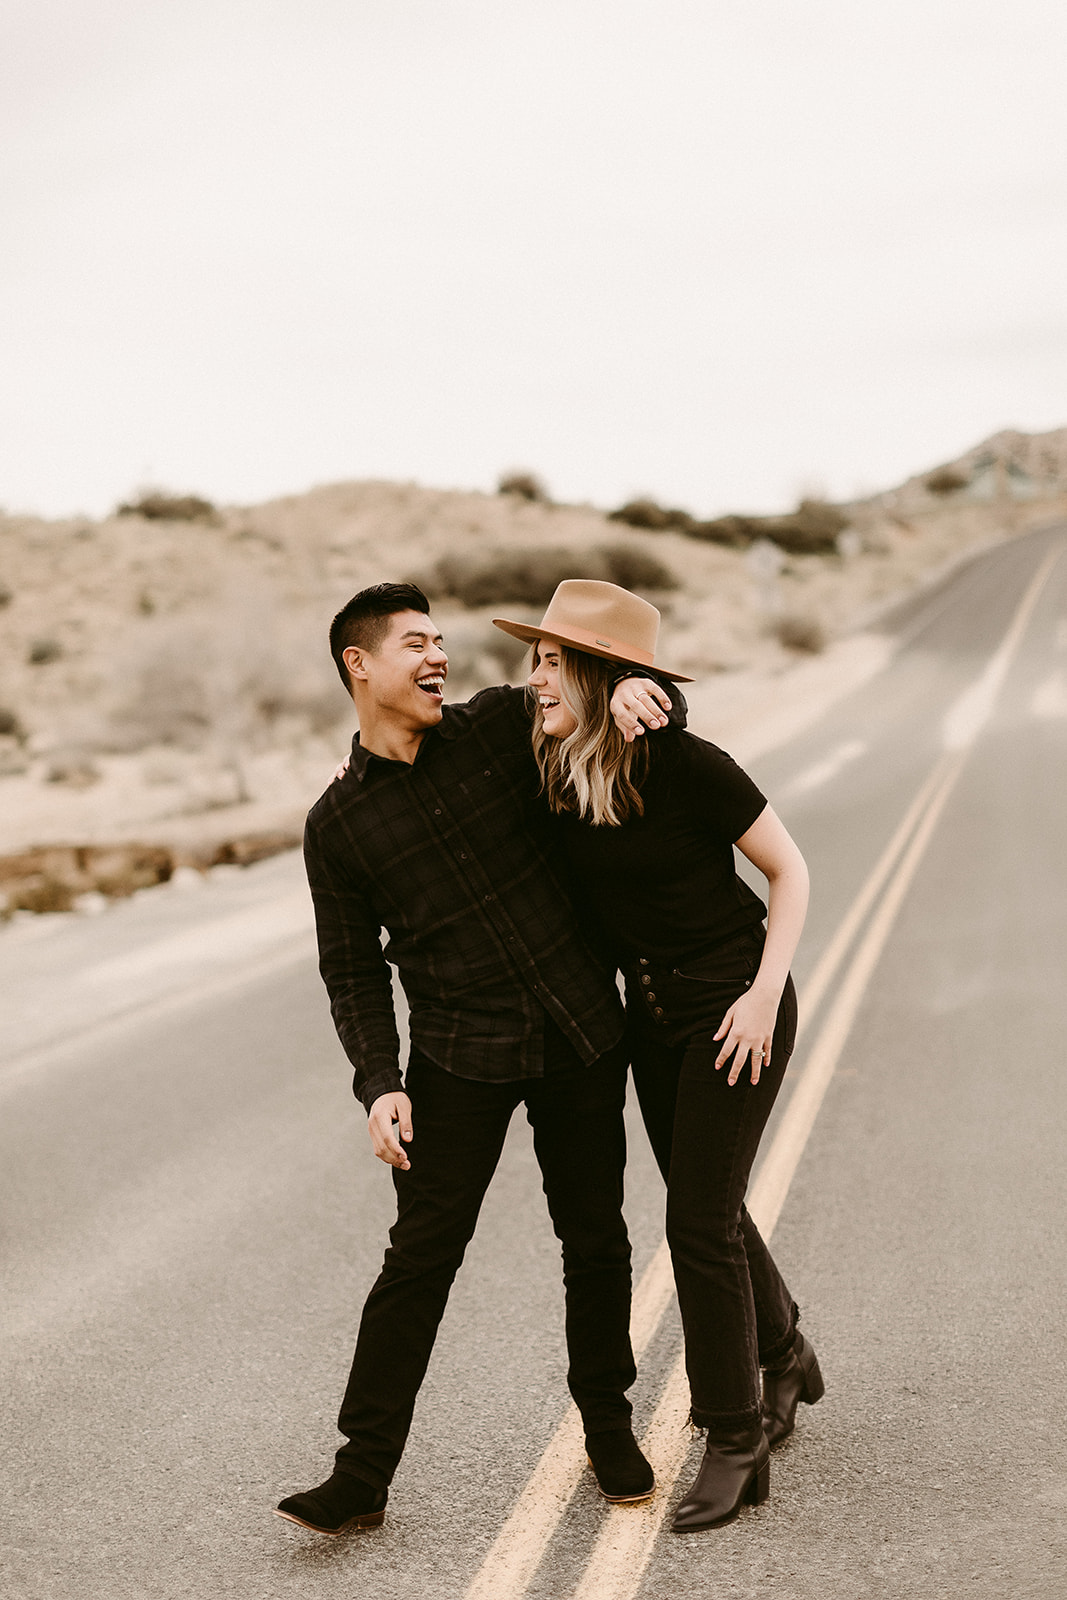 Jamie + Madison_Joshua Tree_2019_0005.jpg